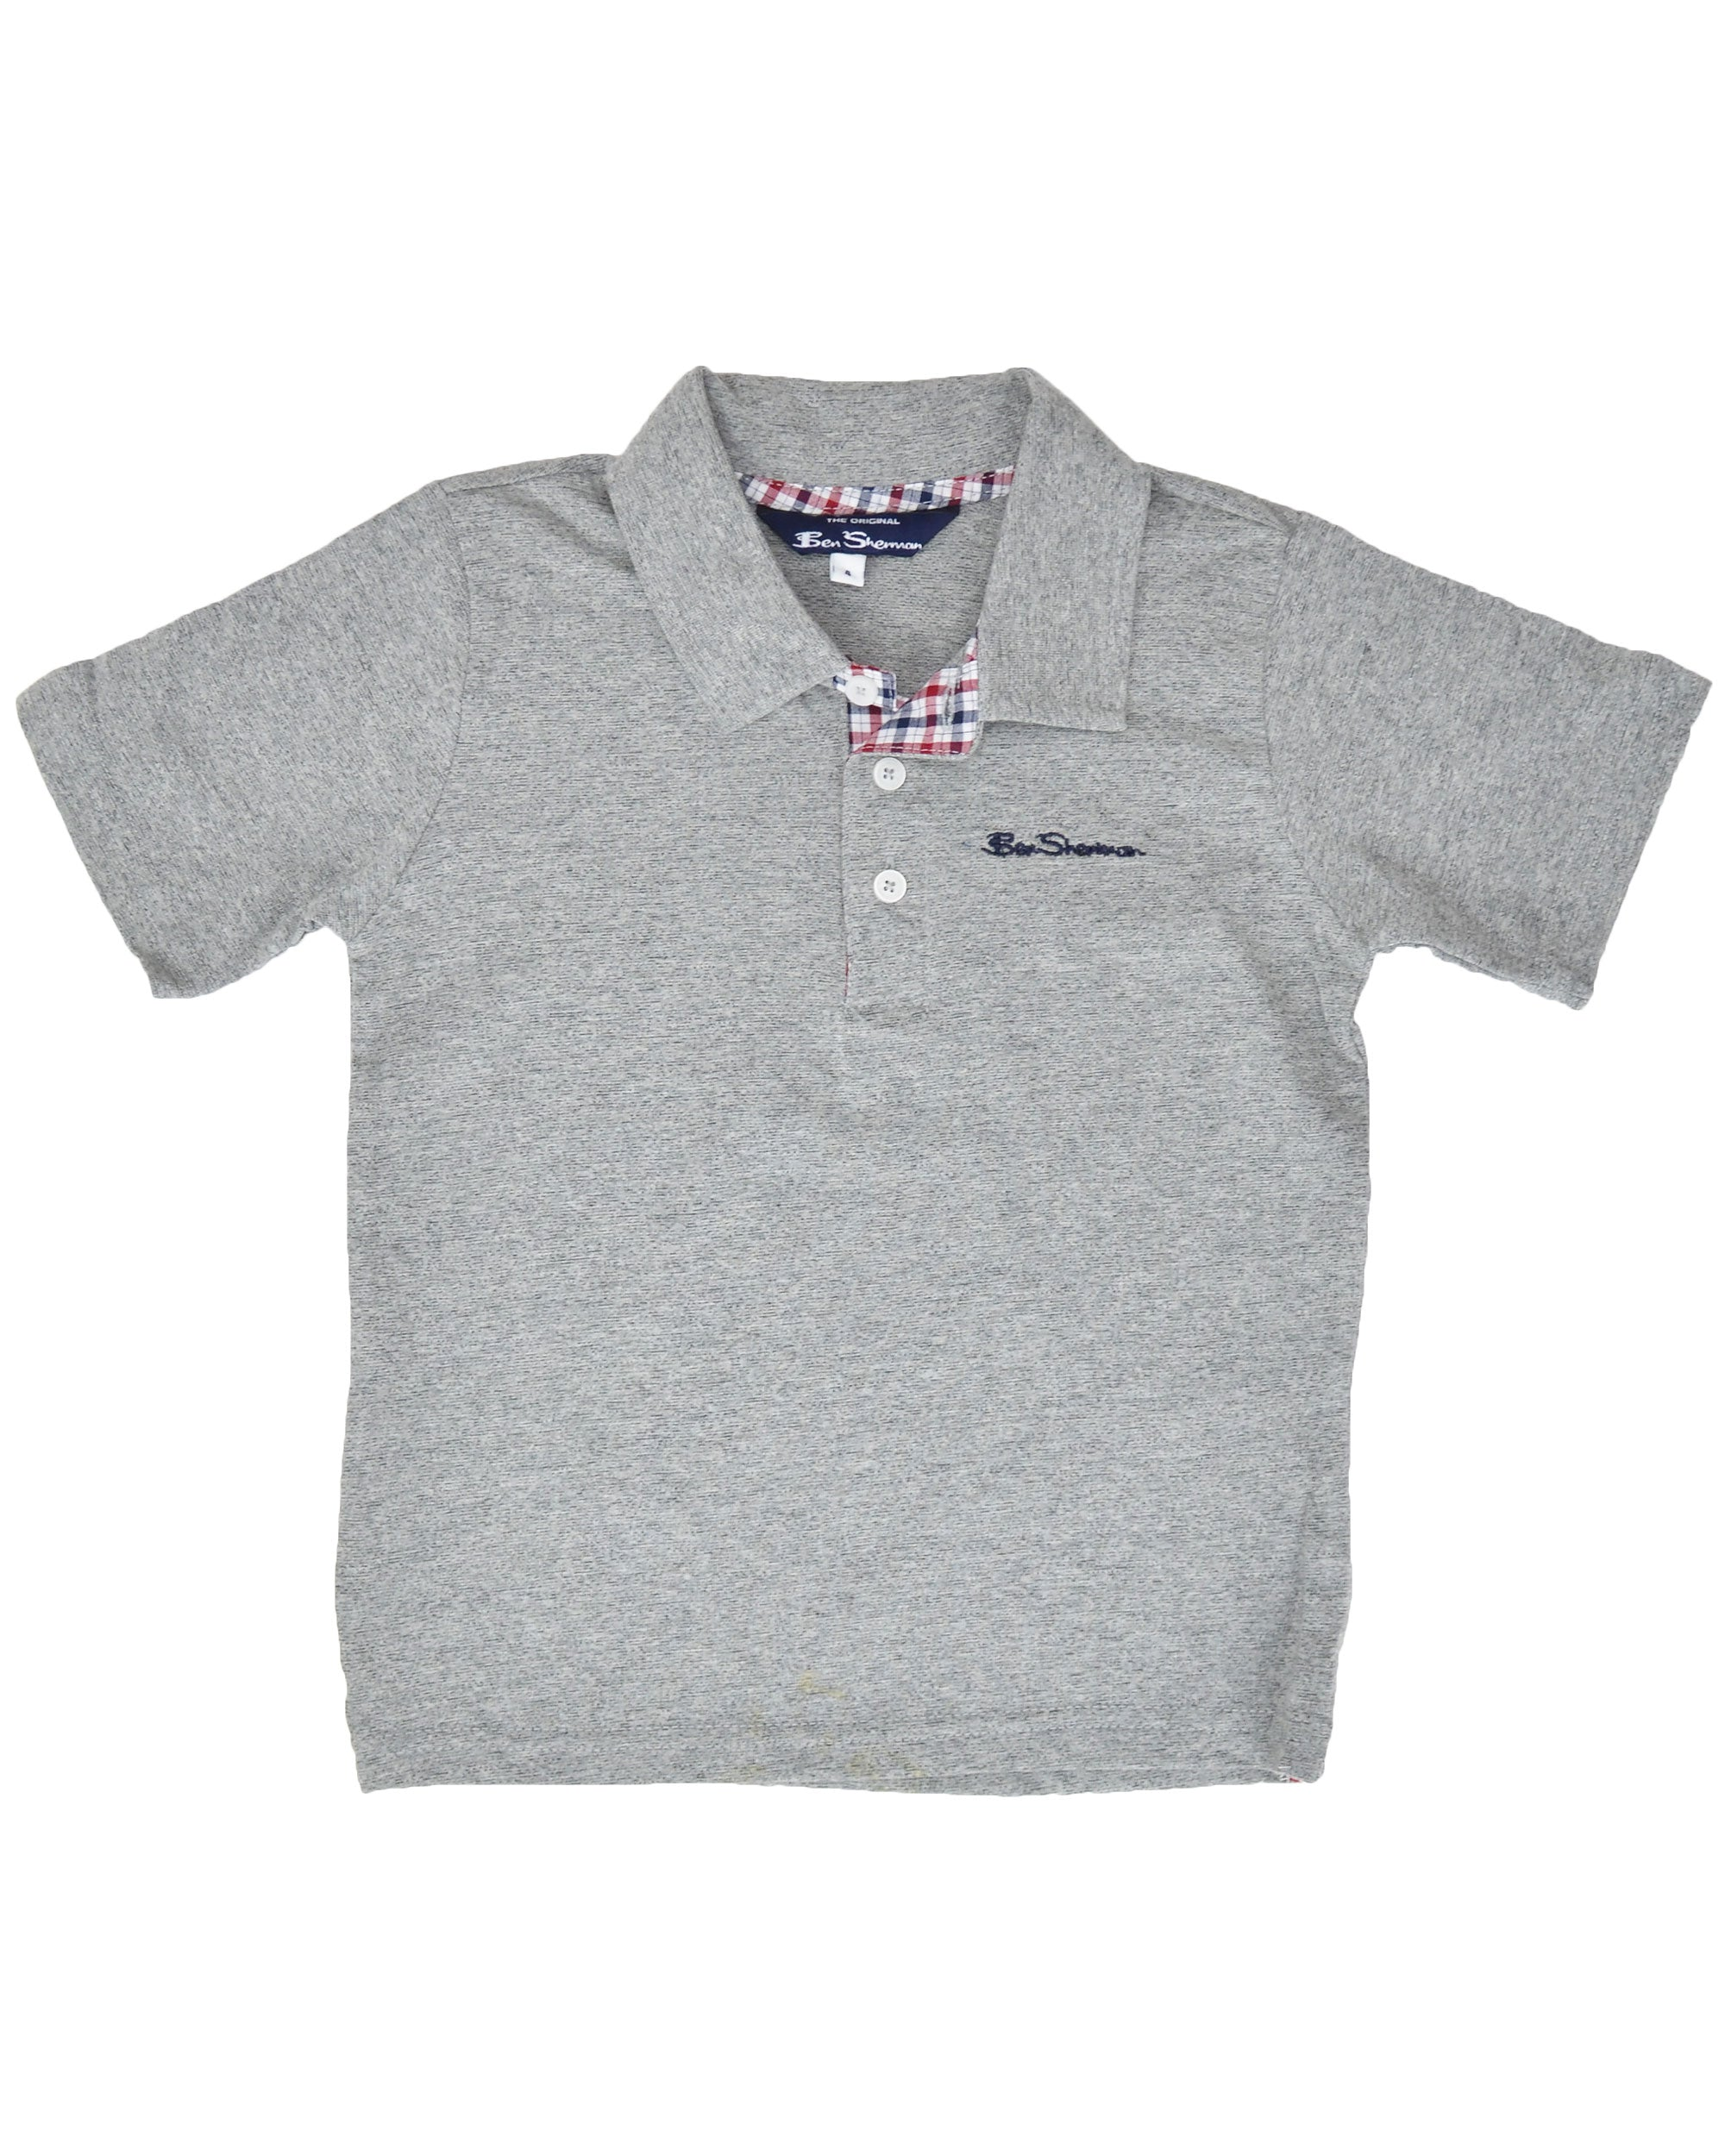 Boys' Short-Sleeve Polo Shirt - Heather Grey (Sizes 8-18)